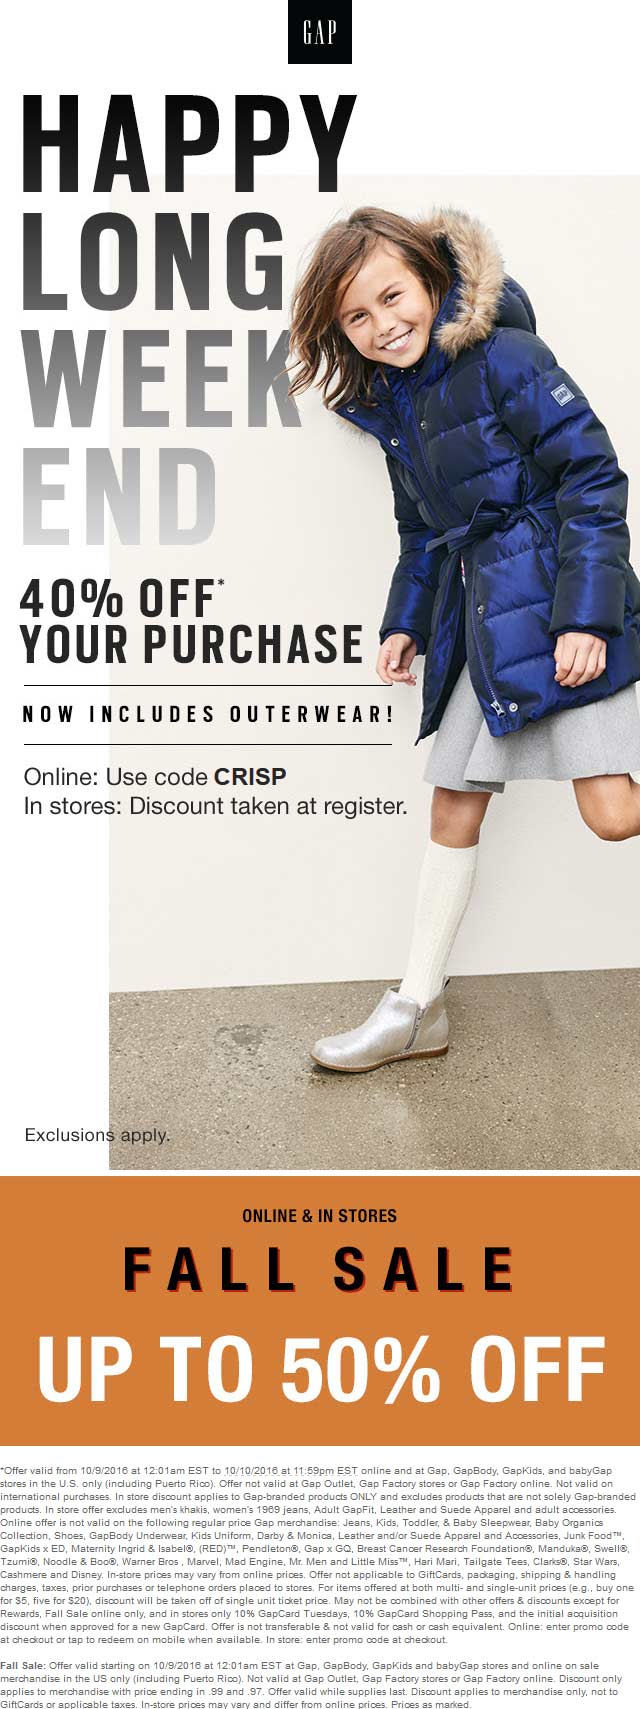 Gap Coupon January 2017 40% off today at Gap, GapBody, GapKids, and babyGap, or online via promo code CRISP